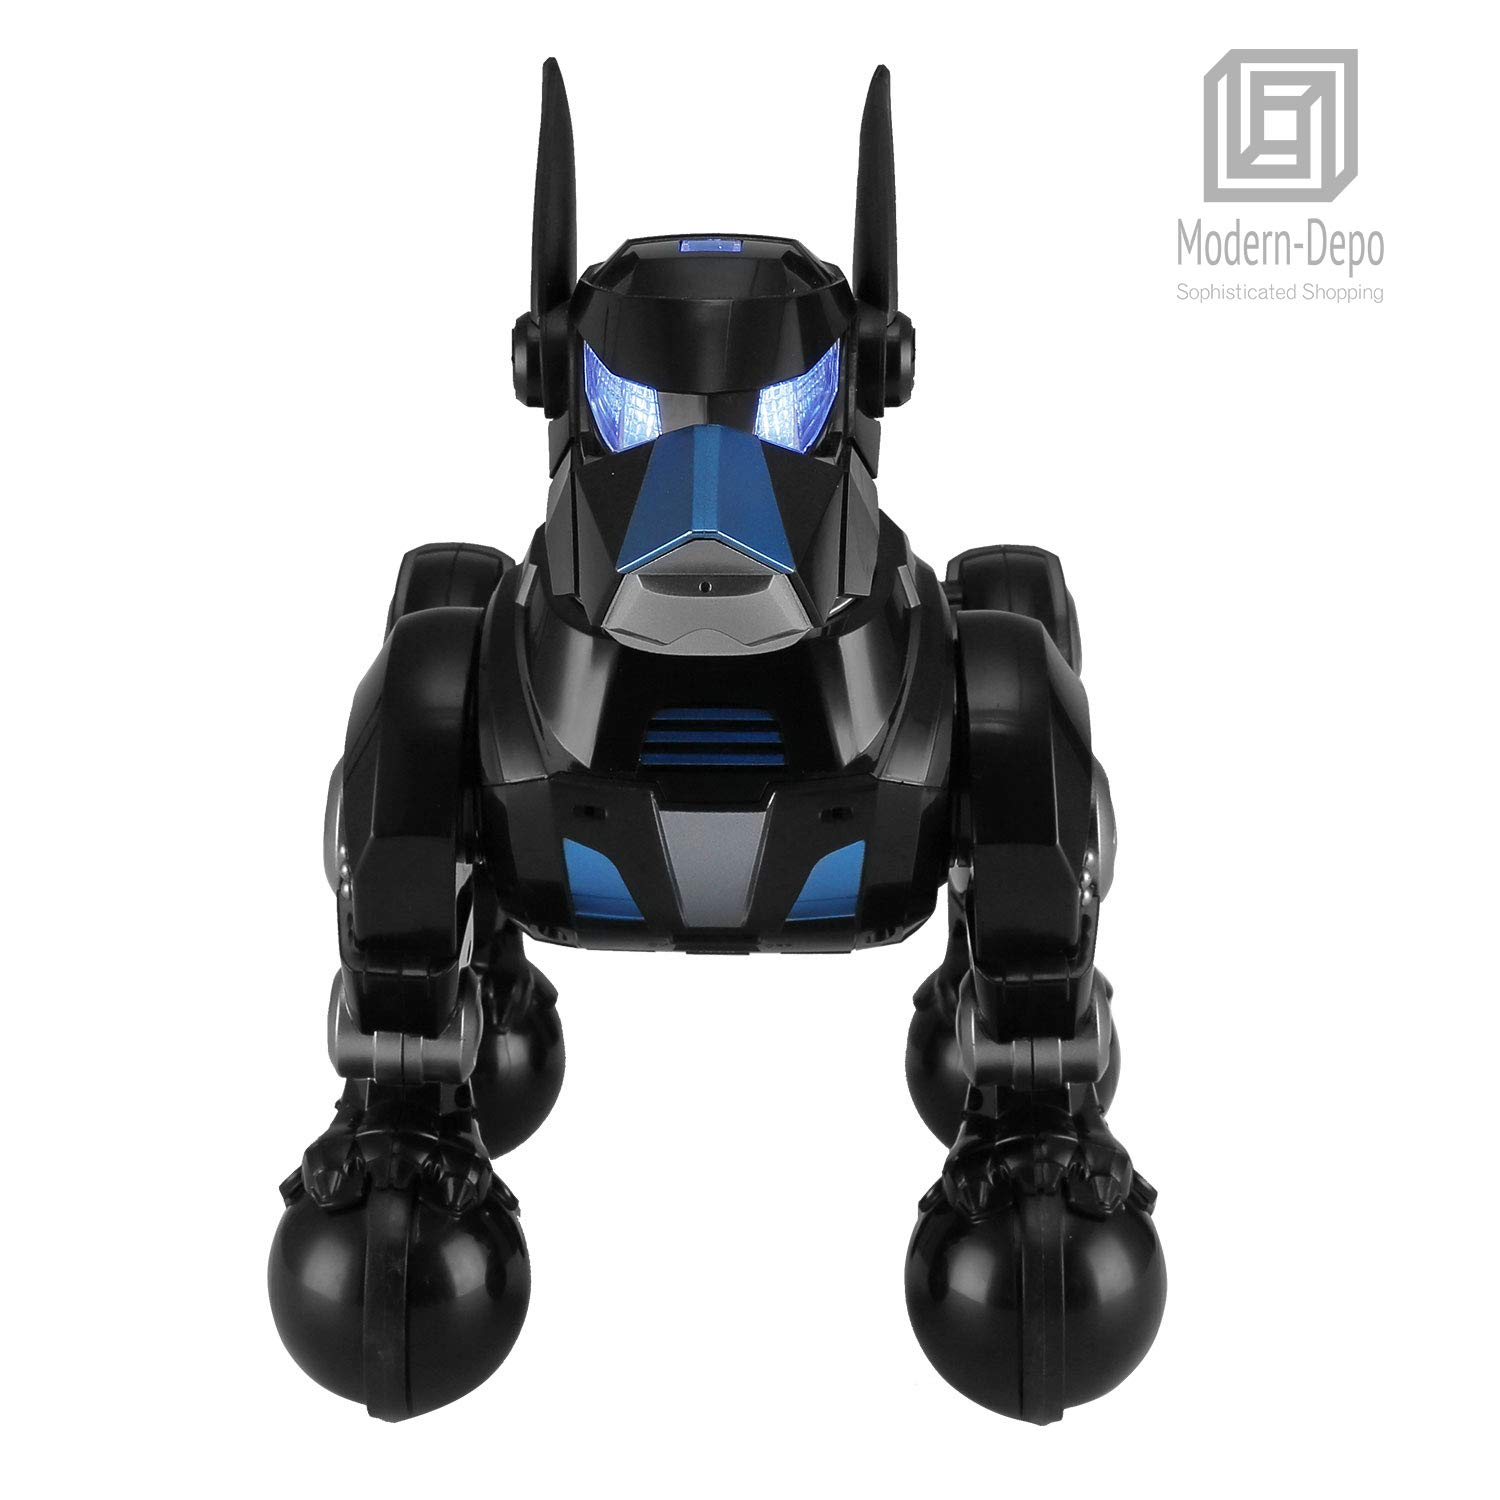 Modern-Depo Rastar Intelligent Robot Dog with Remote Control for Kids, USB Charging, Dancing Demo - Black by Modern-Depo (Image #2)